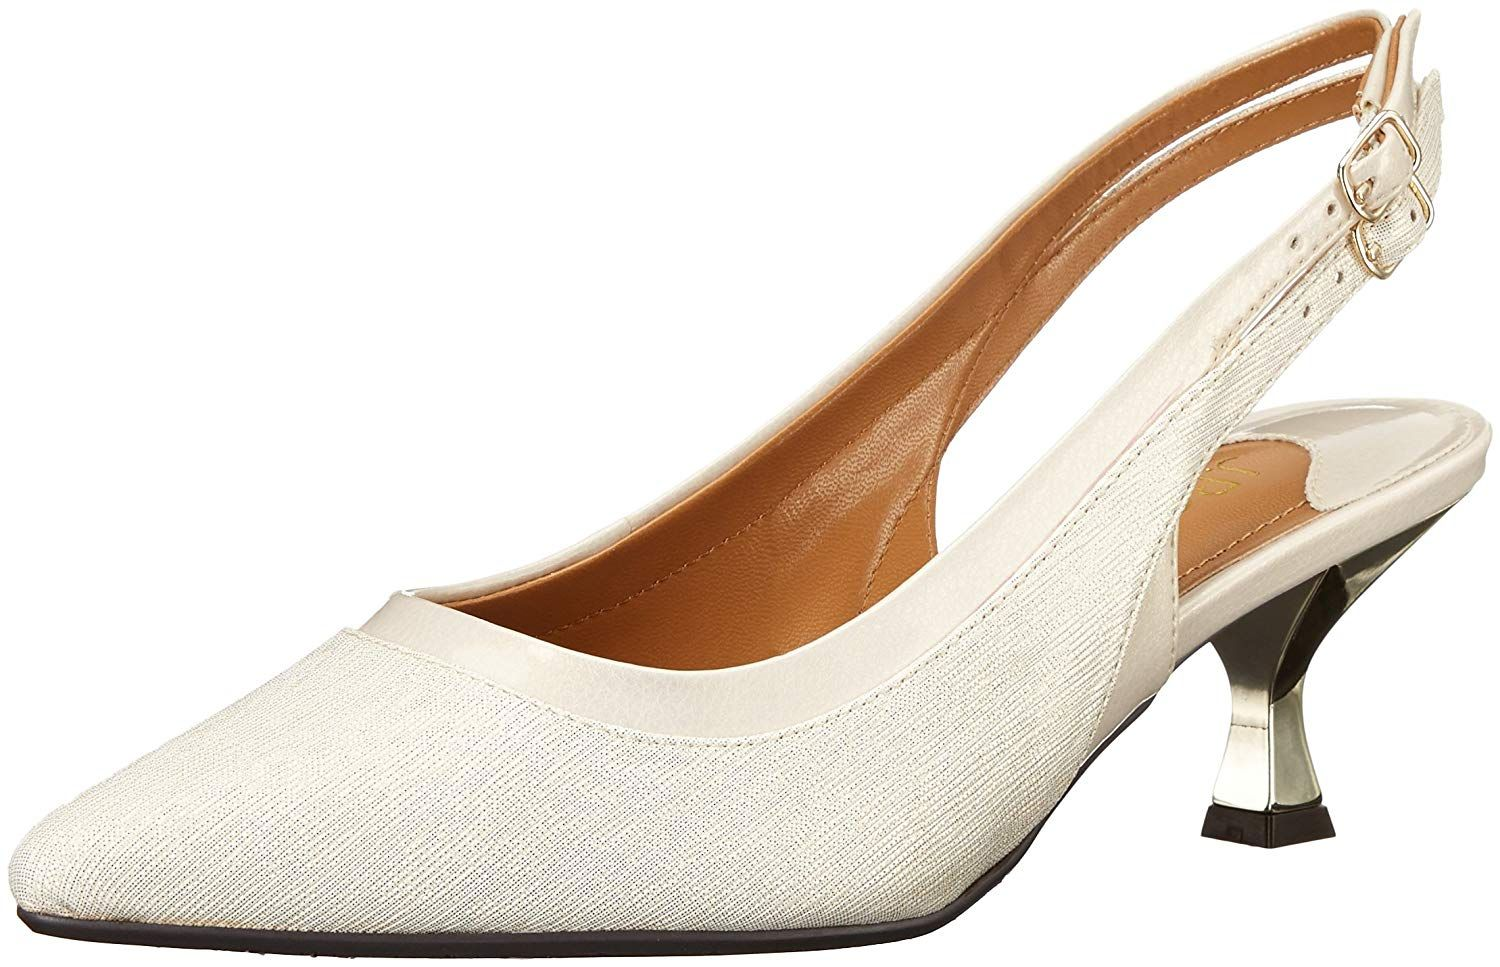 J Renee Women S Kenlie Dress Pump Fresh Contemporary Take On A Classic Silhouette In This Double Strap Low Heel Sli Womens Shoes Pumps Pump Dress Strap Heels